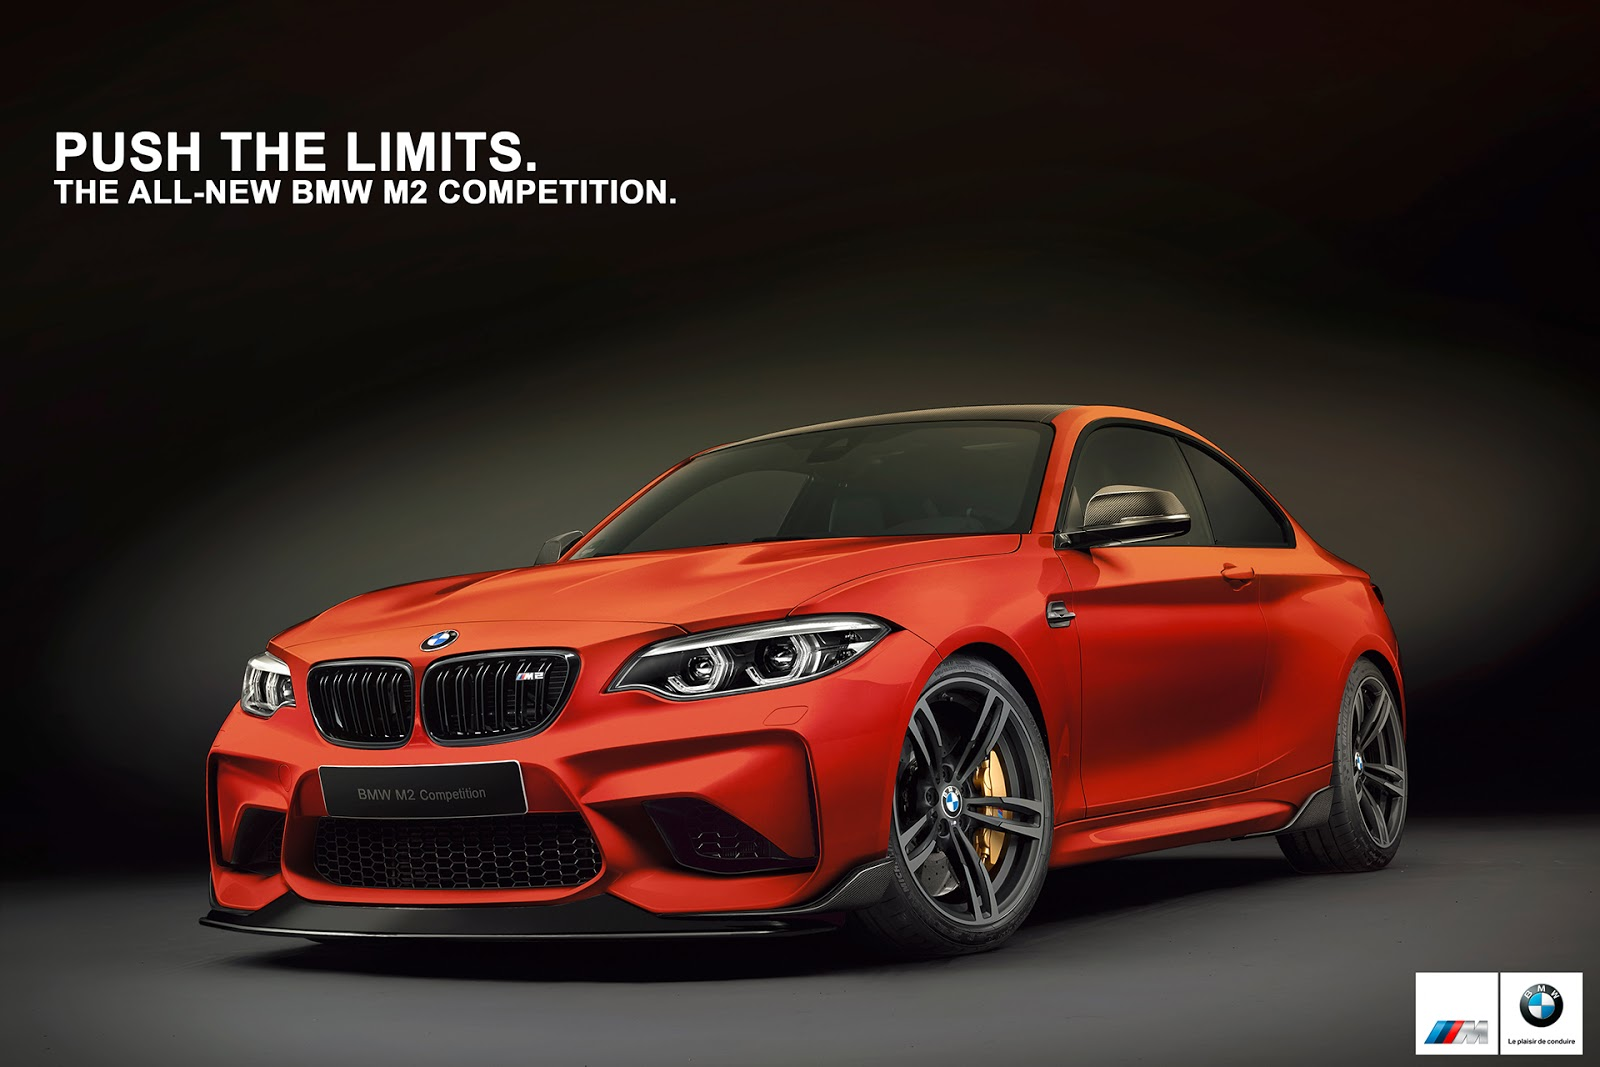 Bmw M2 Series >> BMW M2 Competition Comes To Life With Realistic Renderings | Carscoops